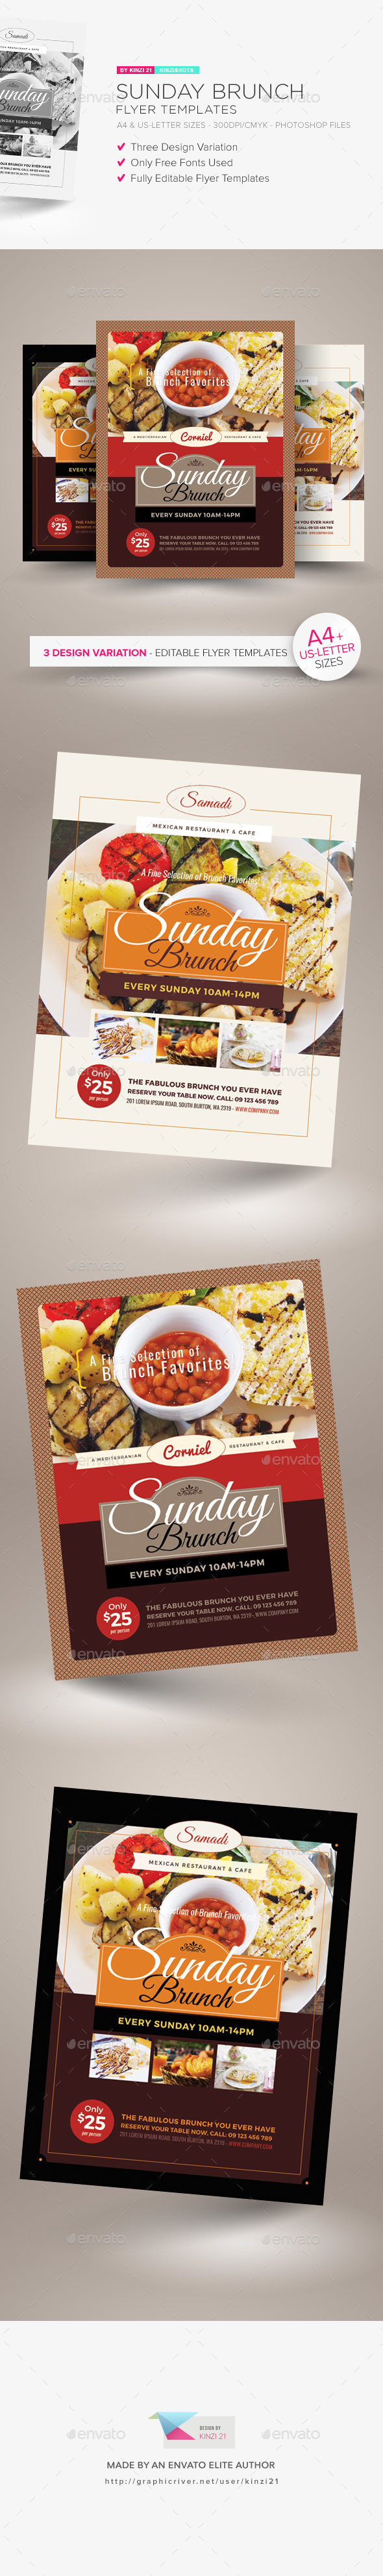 GraphicRiver Sunday Brunch Flyer Templates 21137284